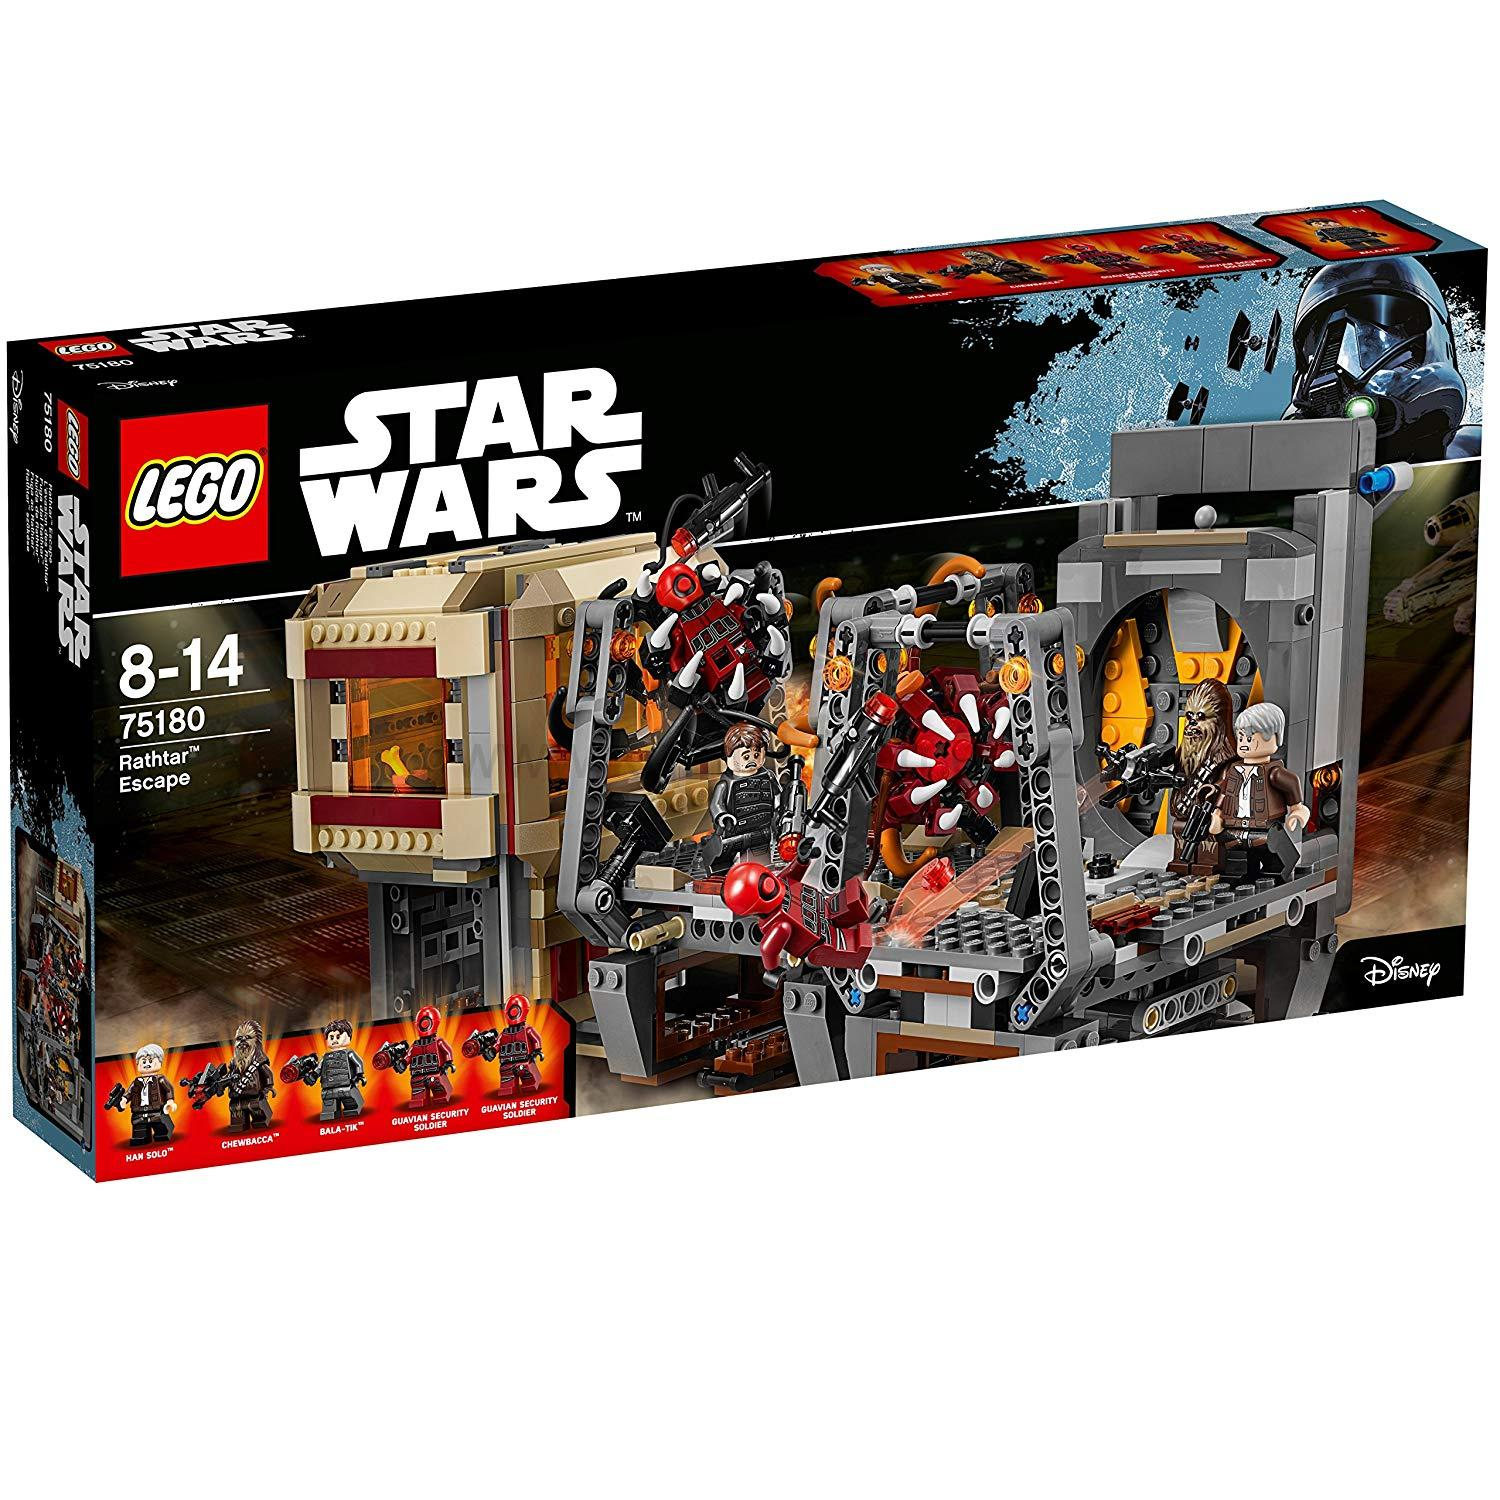 Lego Star Wars 75180 Rathtaruv utek